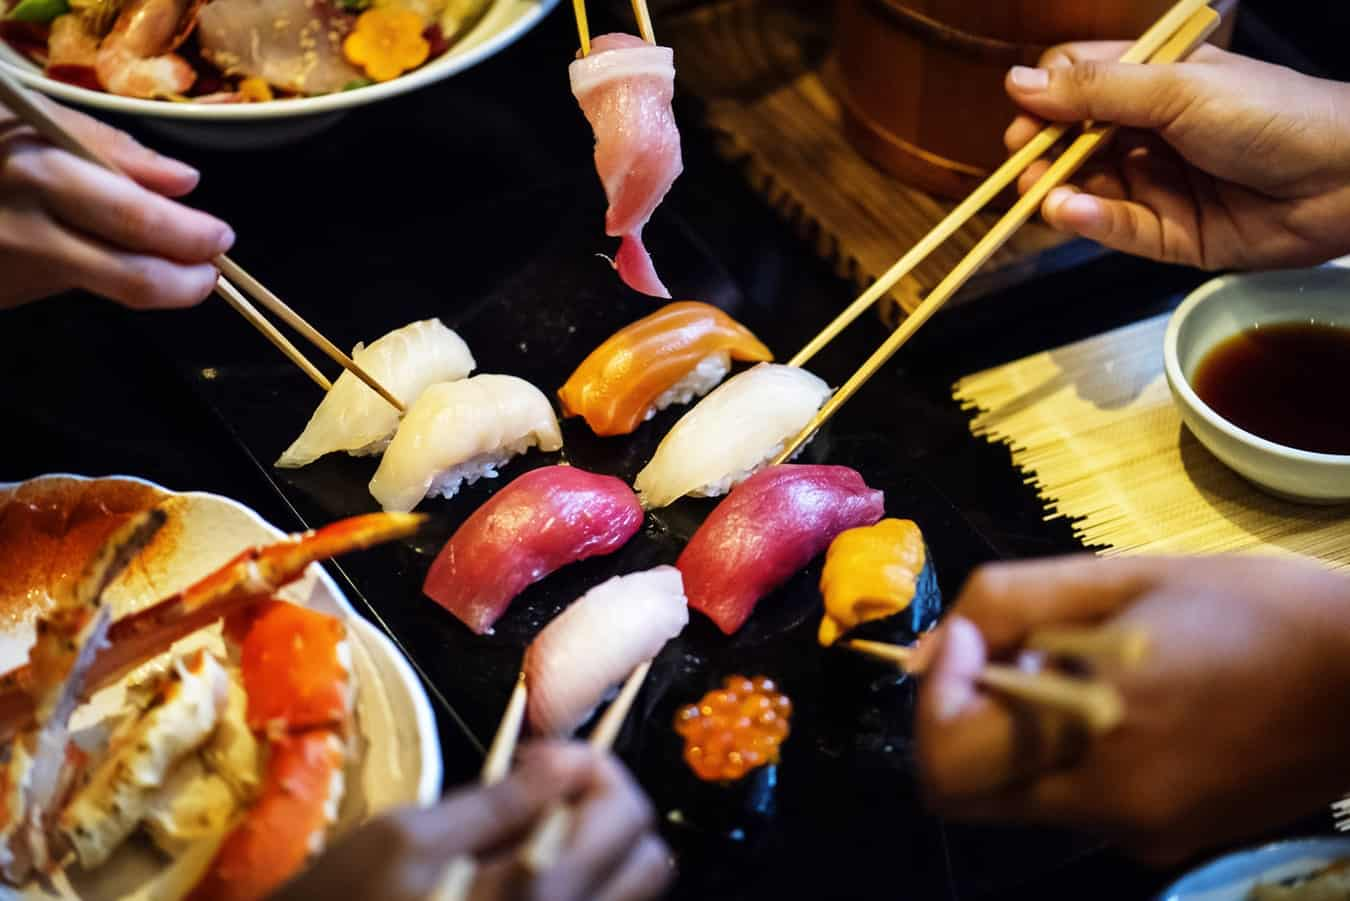 A group of people using chopsticks to pick up sushi